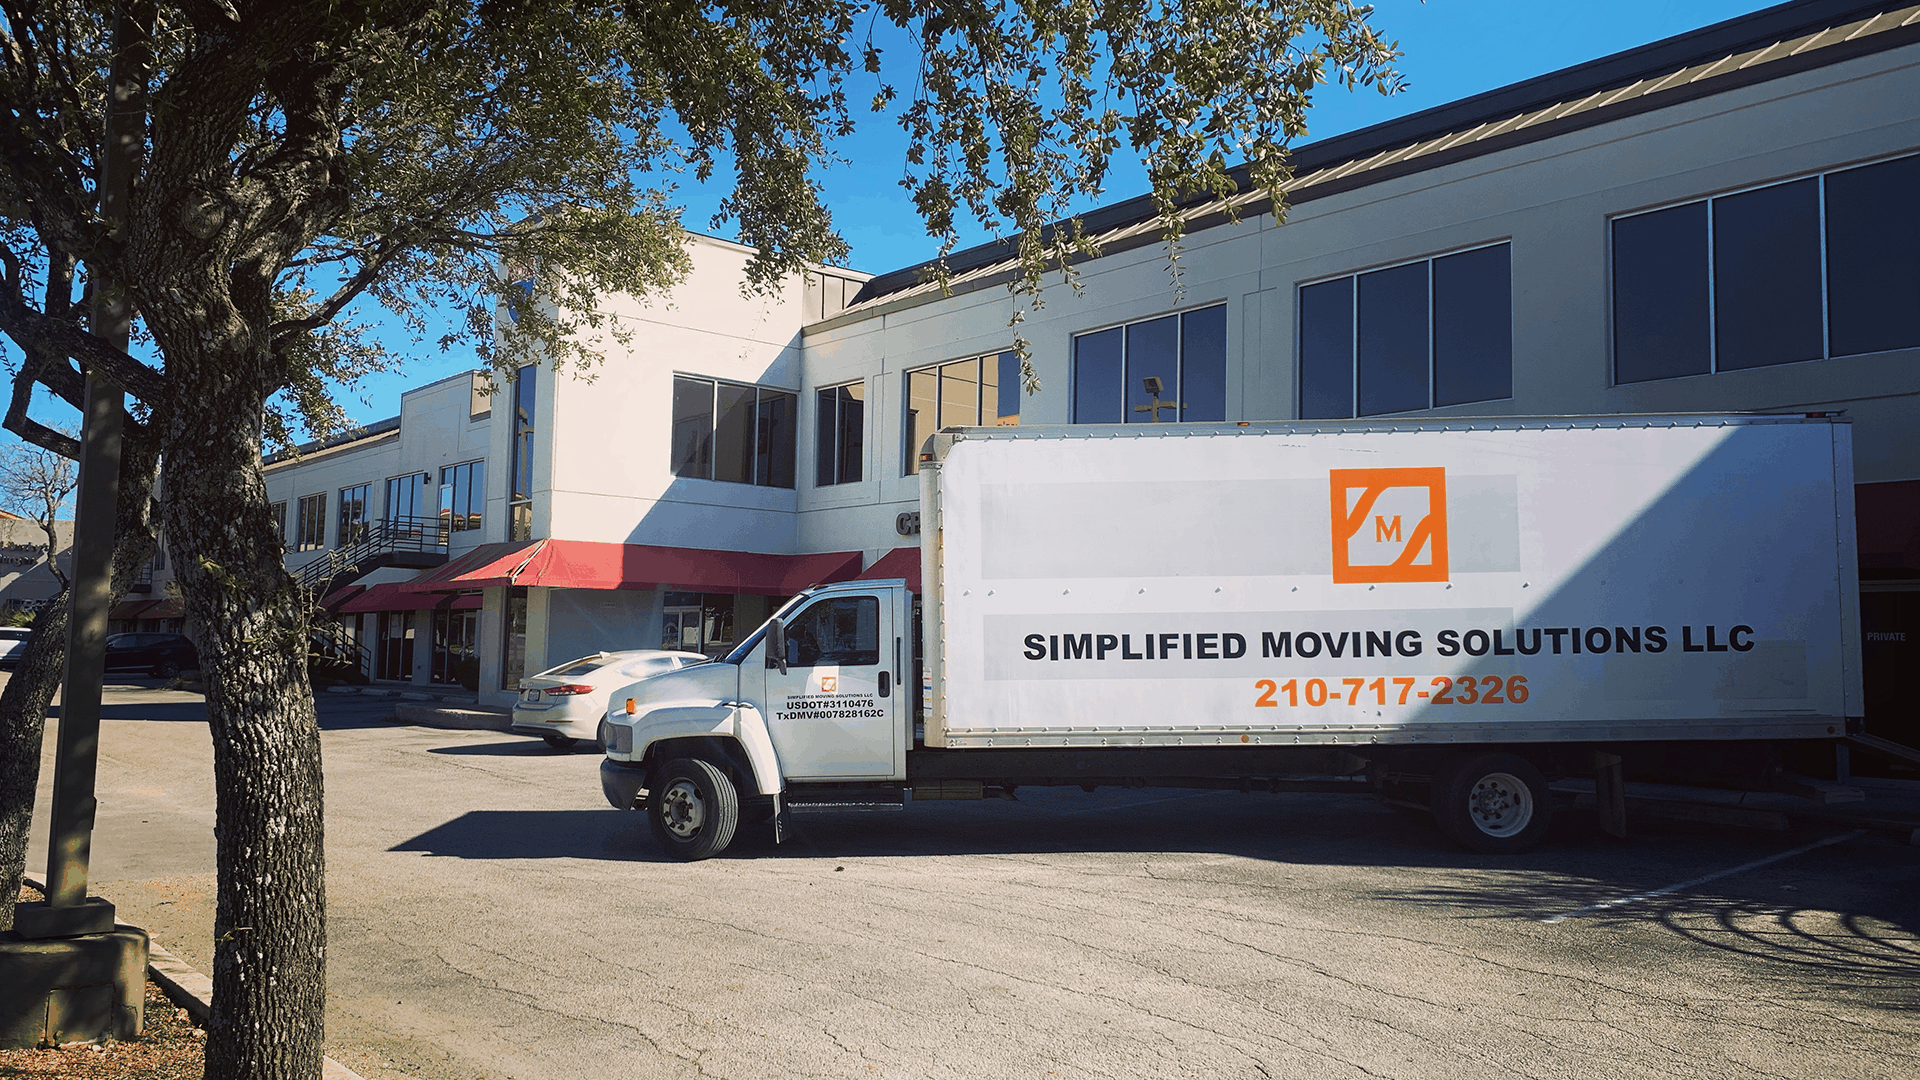 Image of Simplified Moving Solutions big moving truck